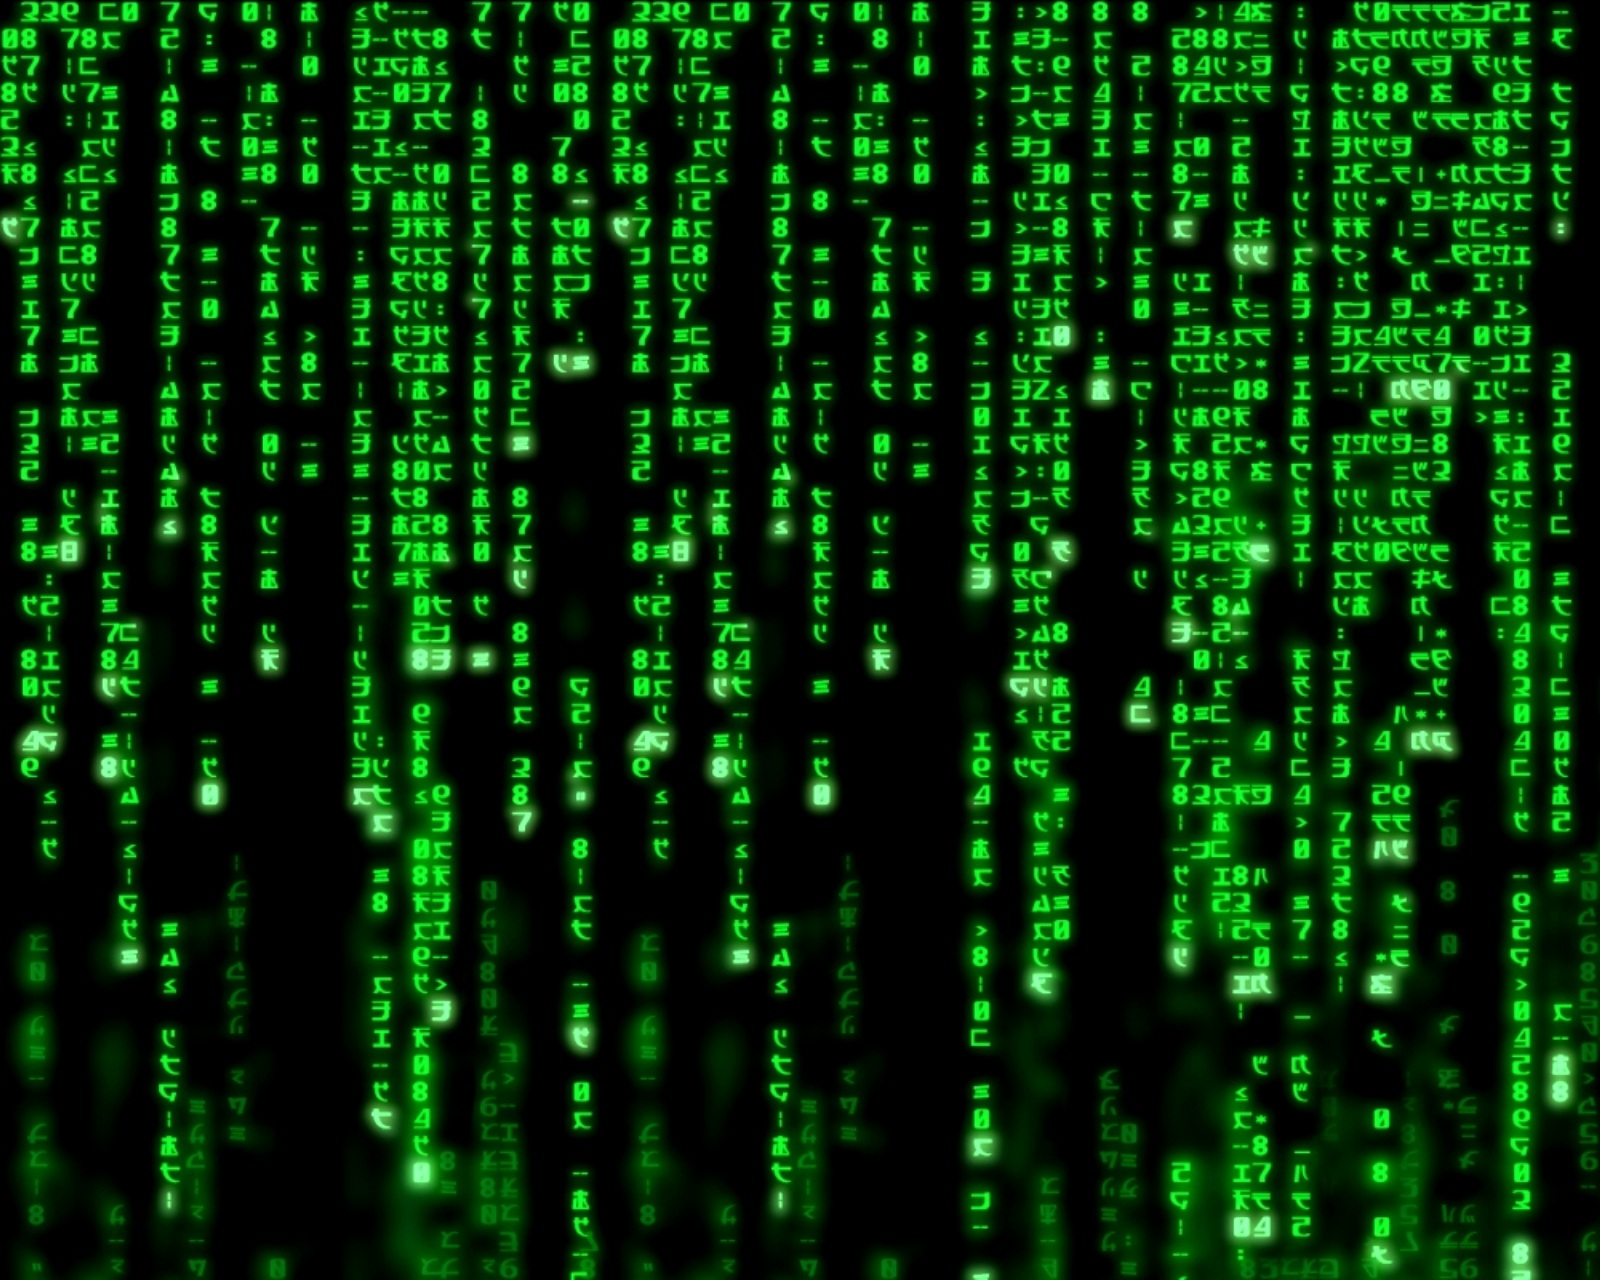 download matrix wallpaper android gallery